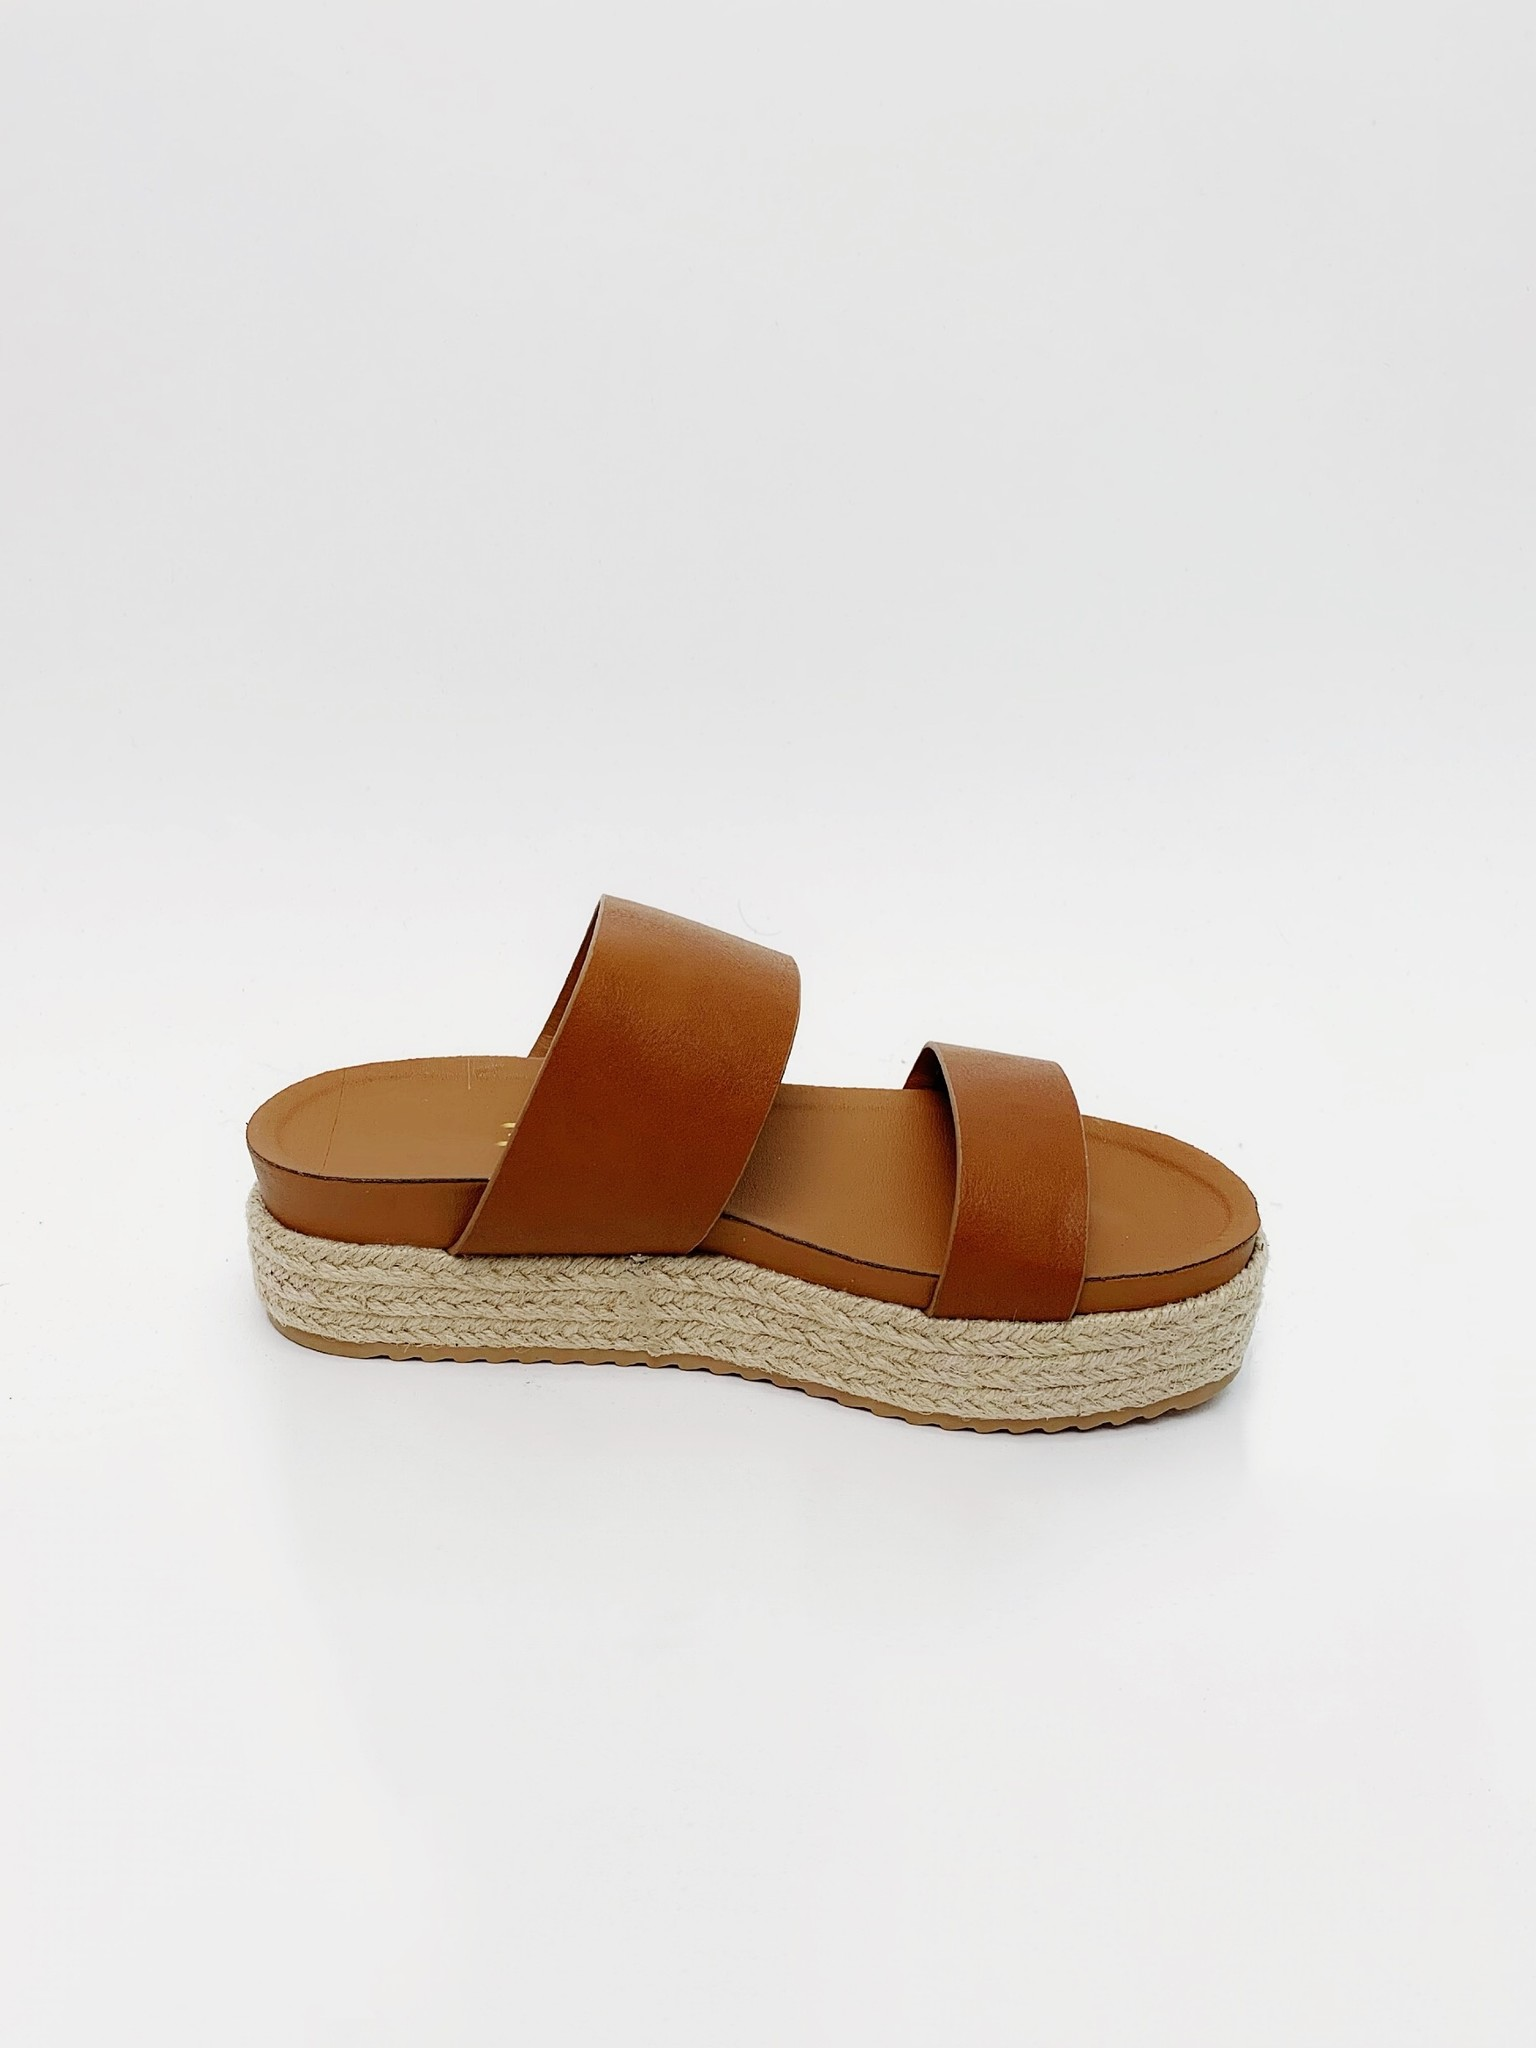 Sandal Brown Jute Platform Slide